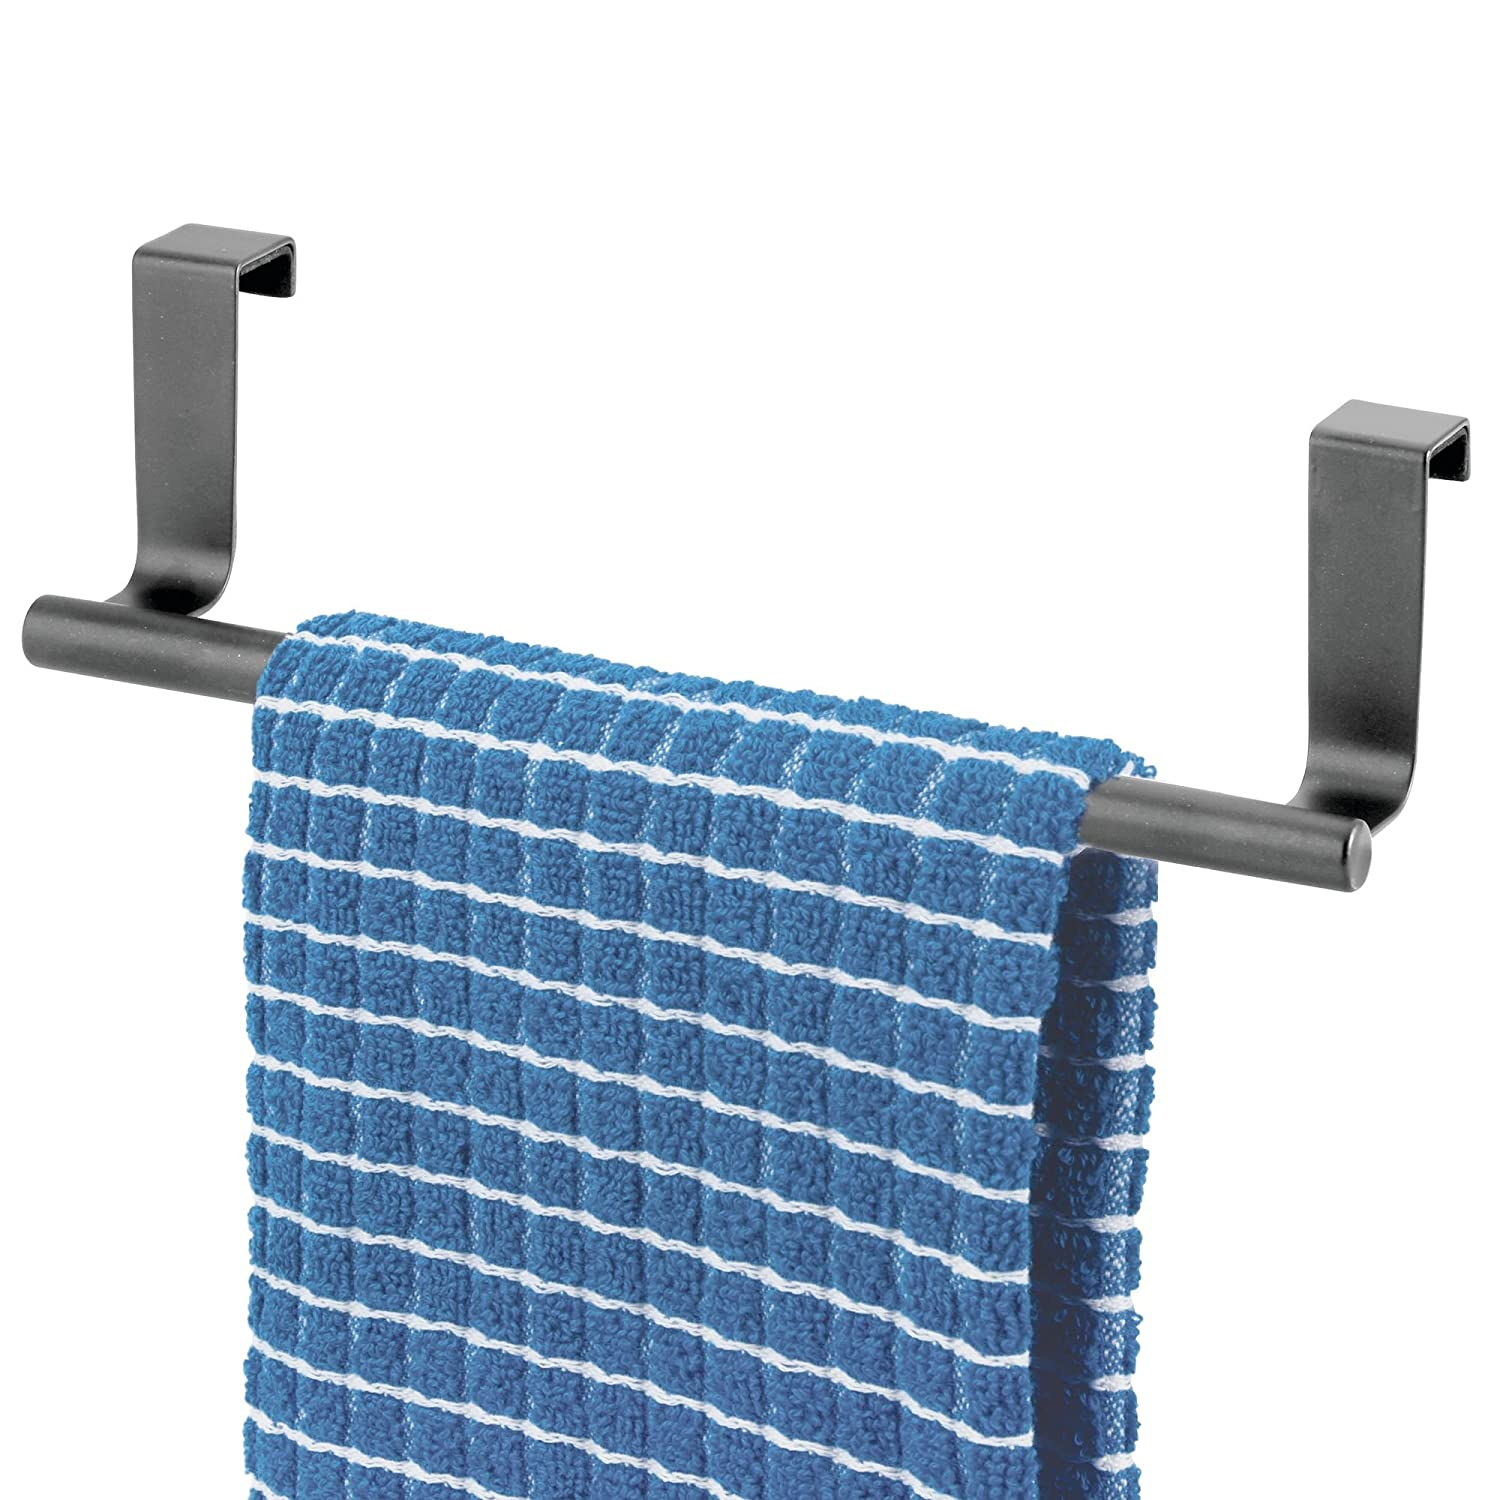 Towel Bars Online Shopping For Clothing Shoes Jewelry